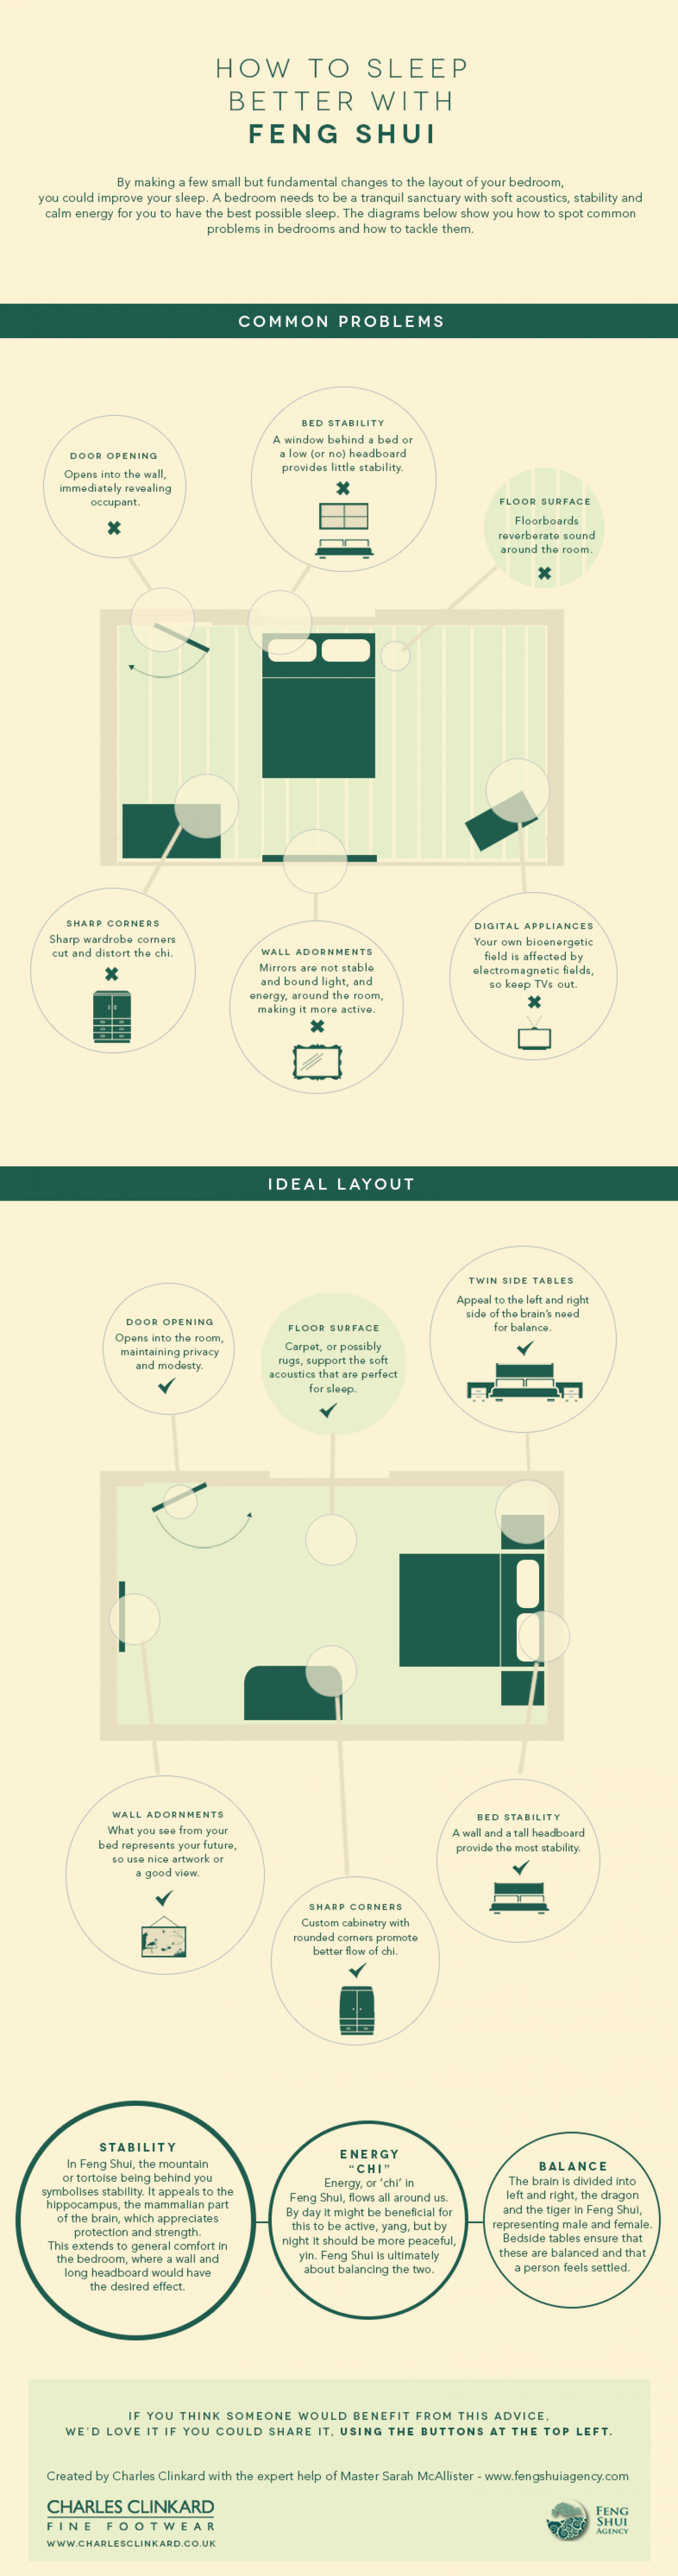 How to Sleep Better with Feng Shui Infographic